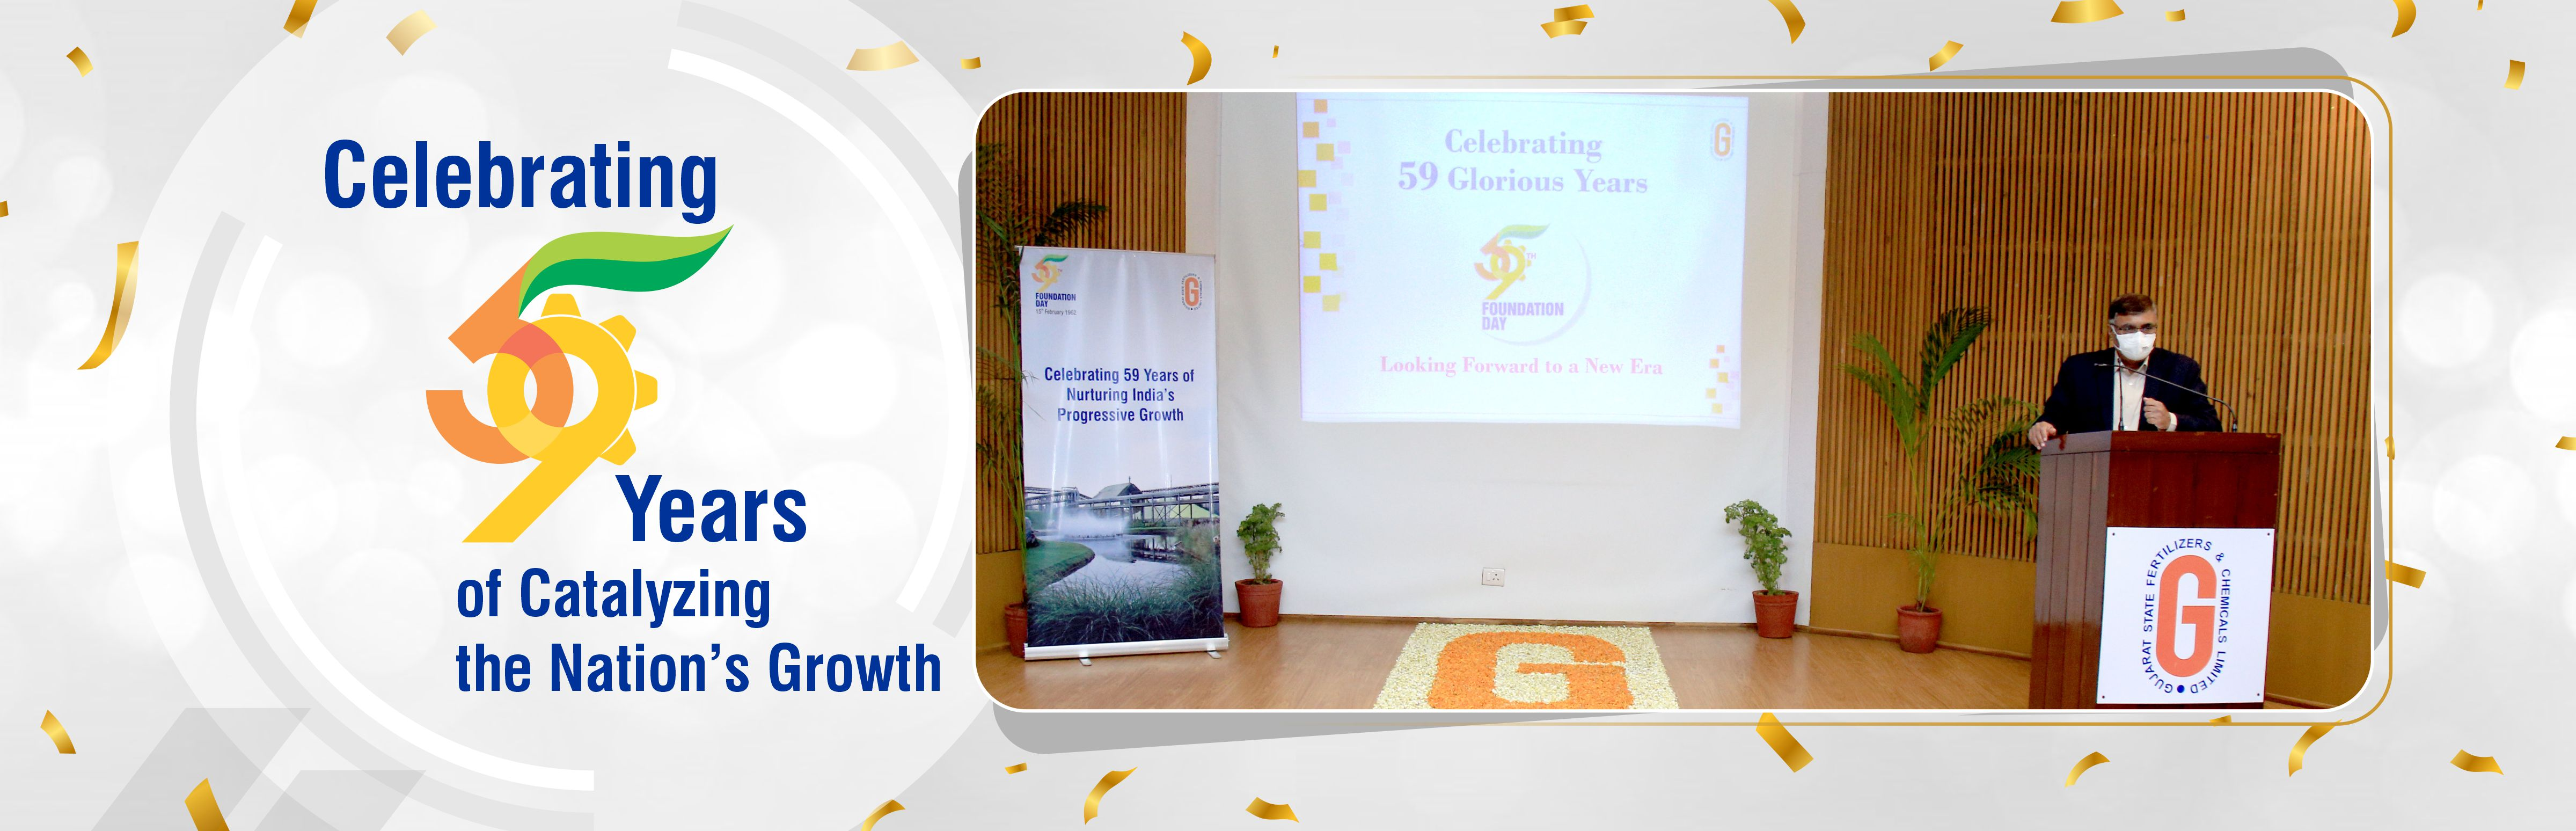 Celebrating 59 Years of Catalyzing the Nation's Growth